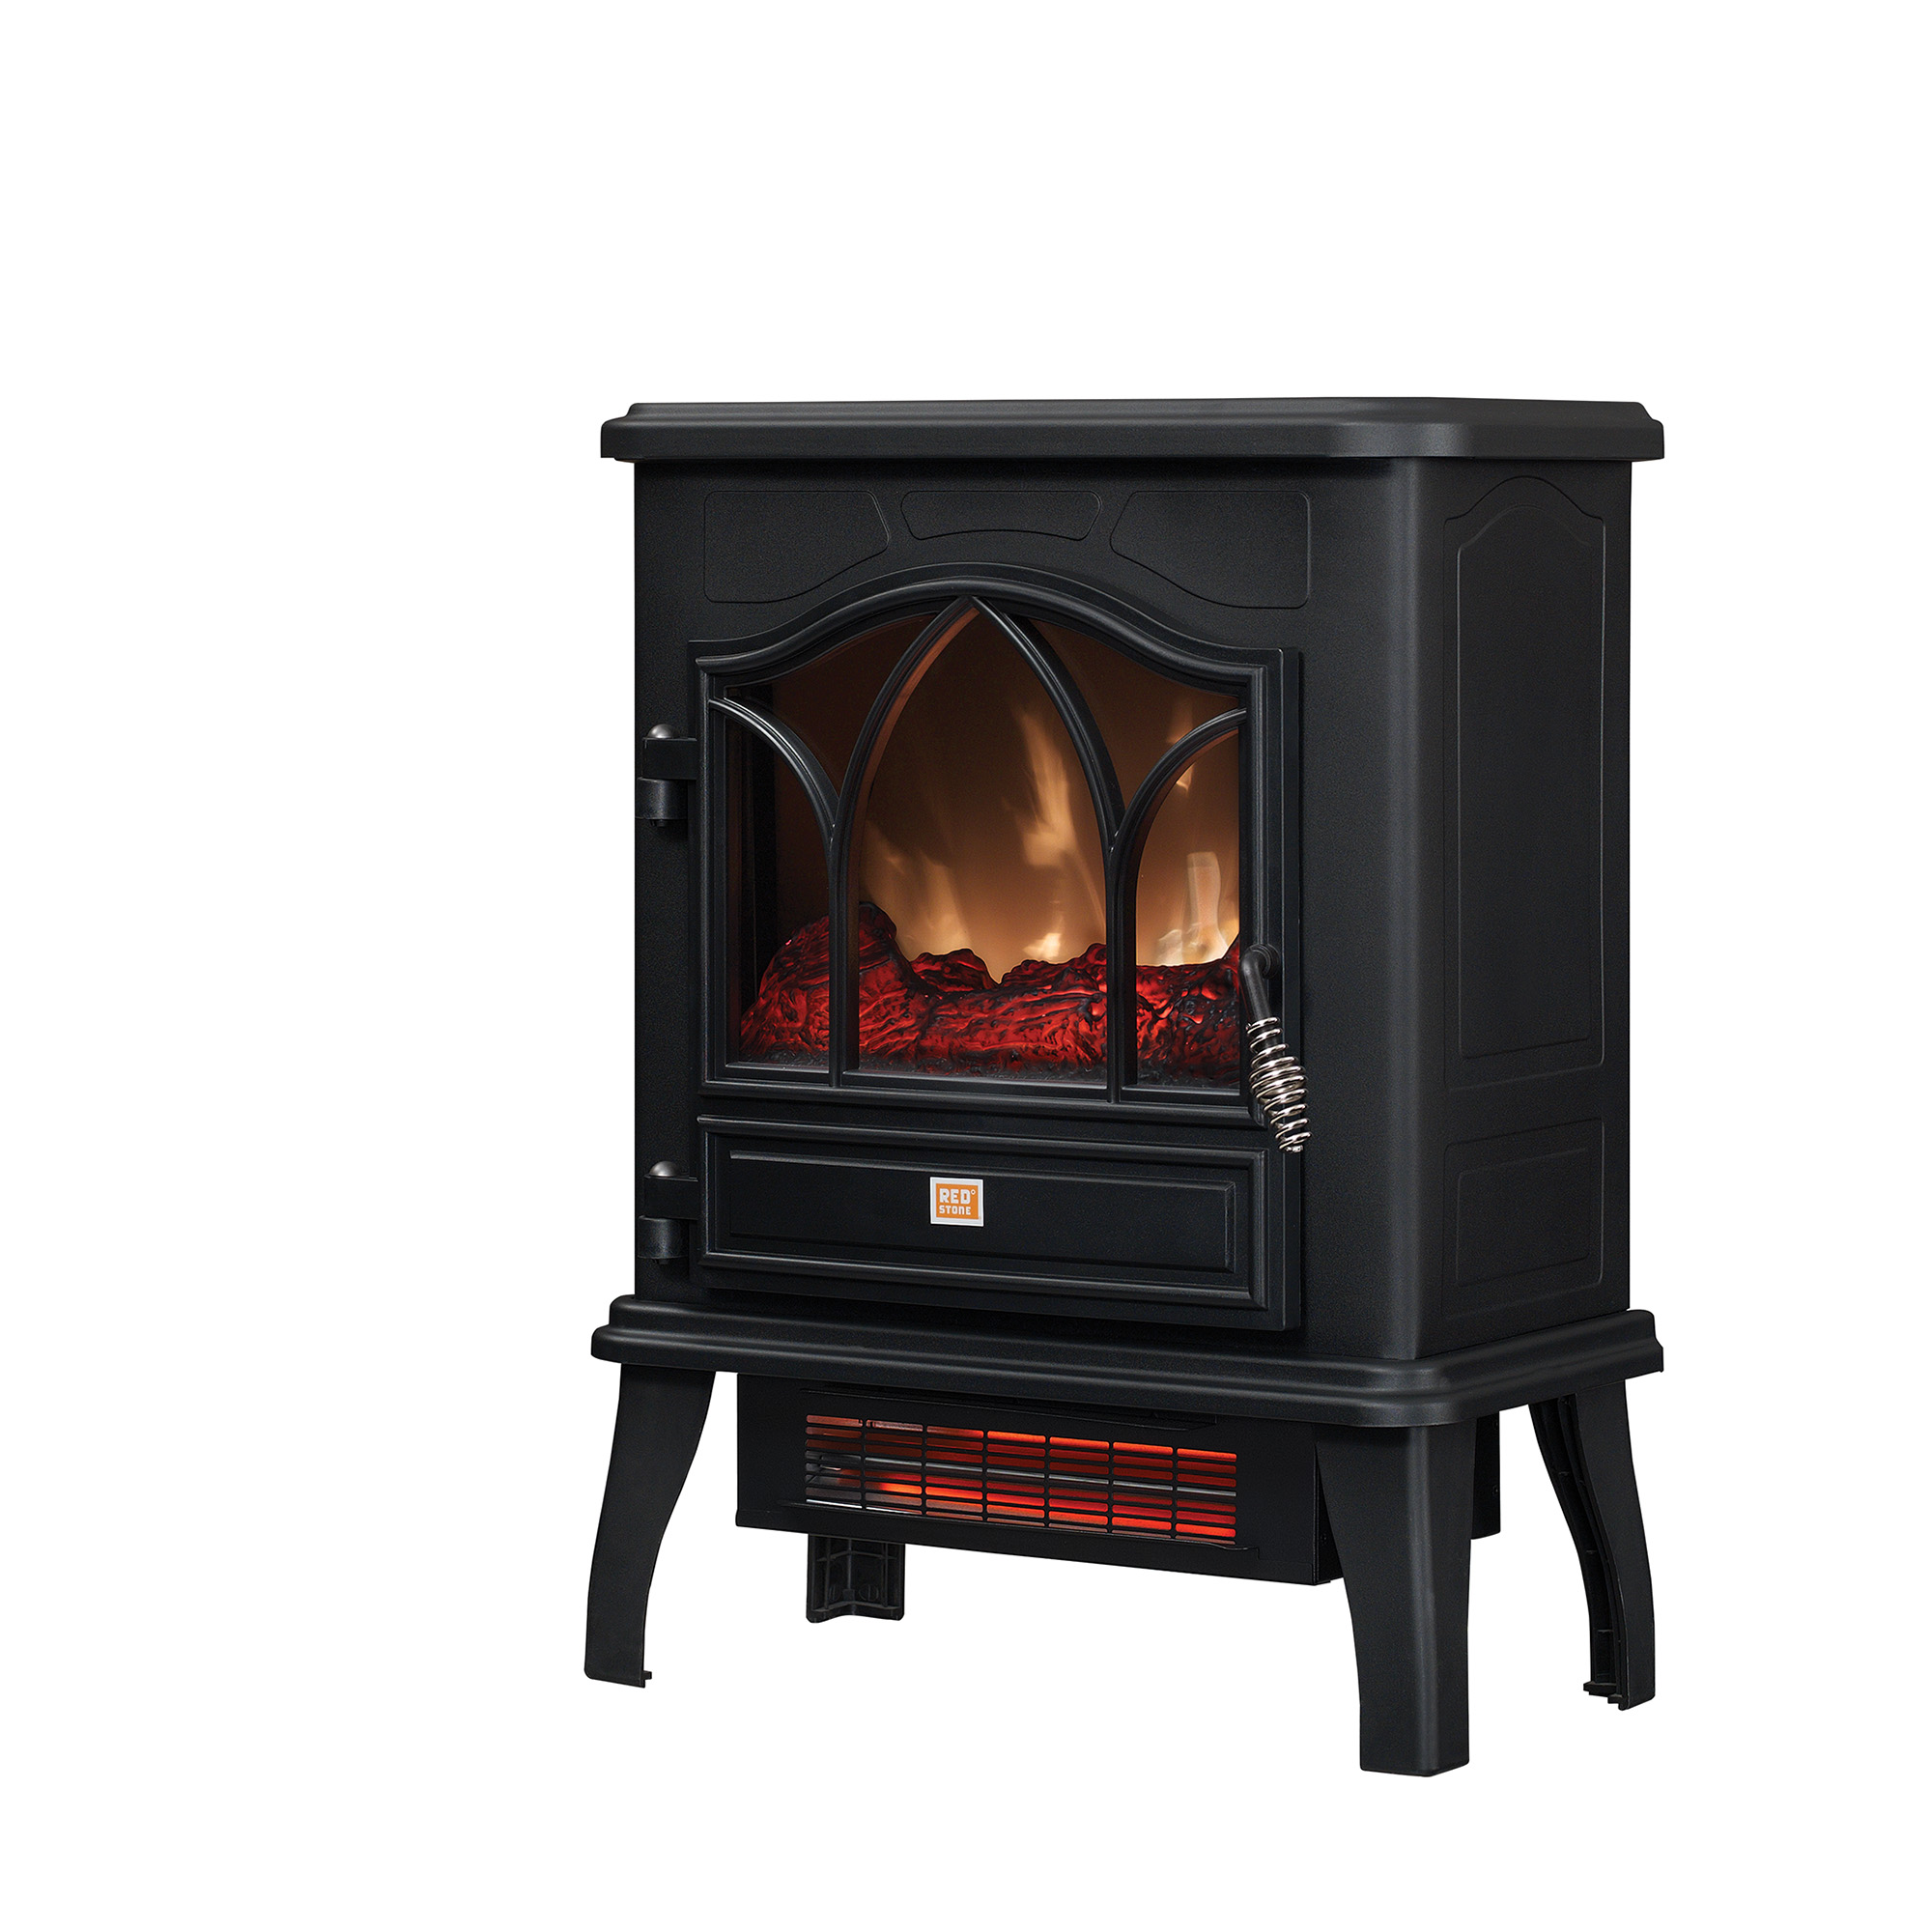 ChimneyFree Electric Metal Stove Heater; CFI-470-02